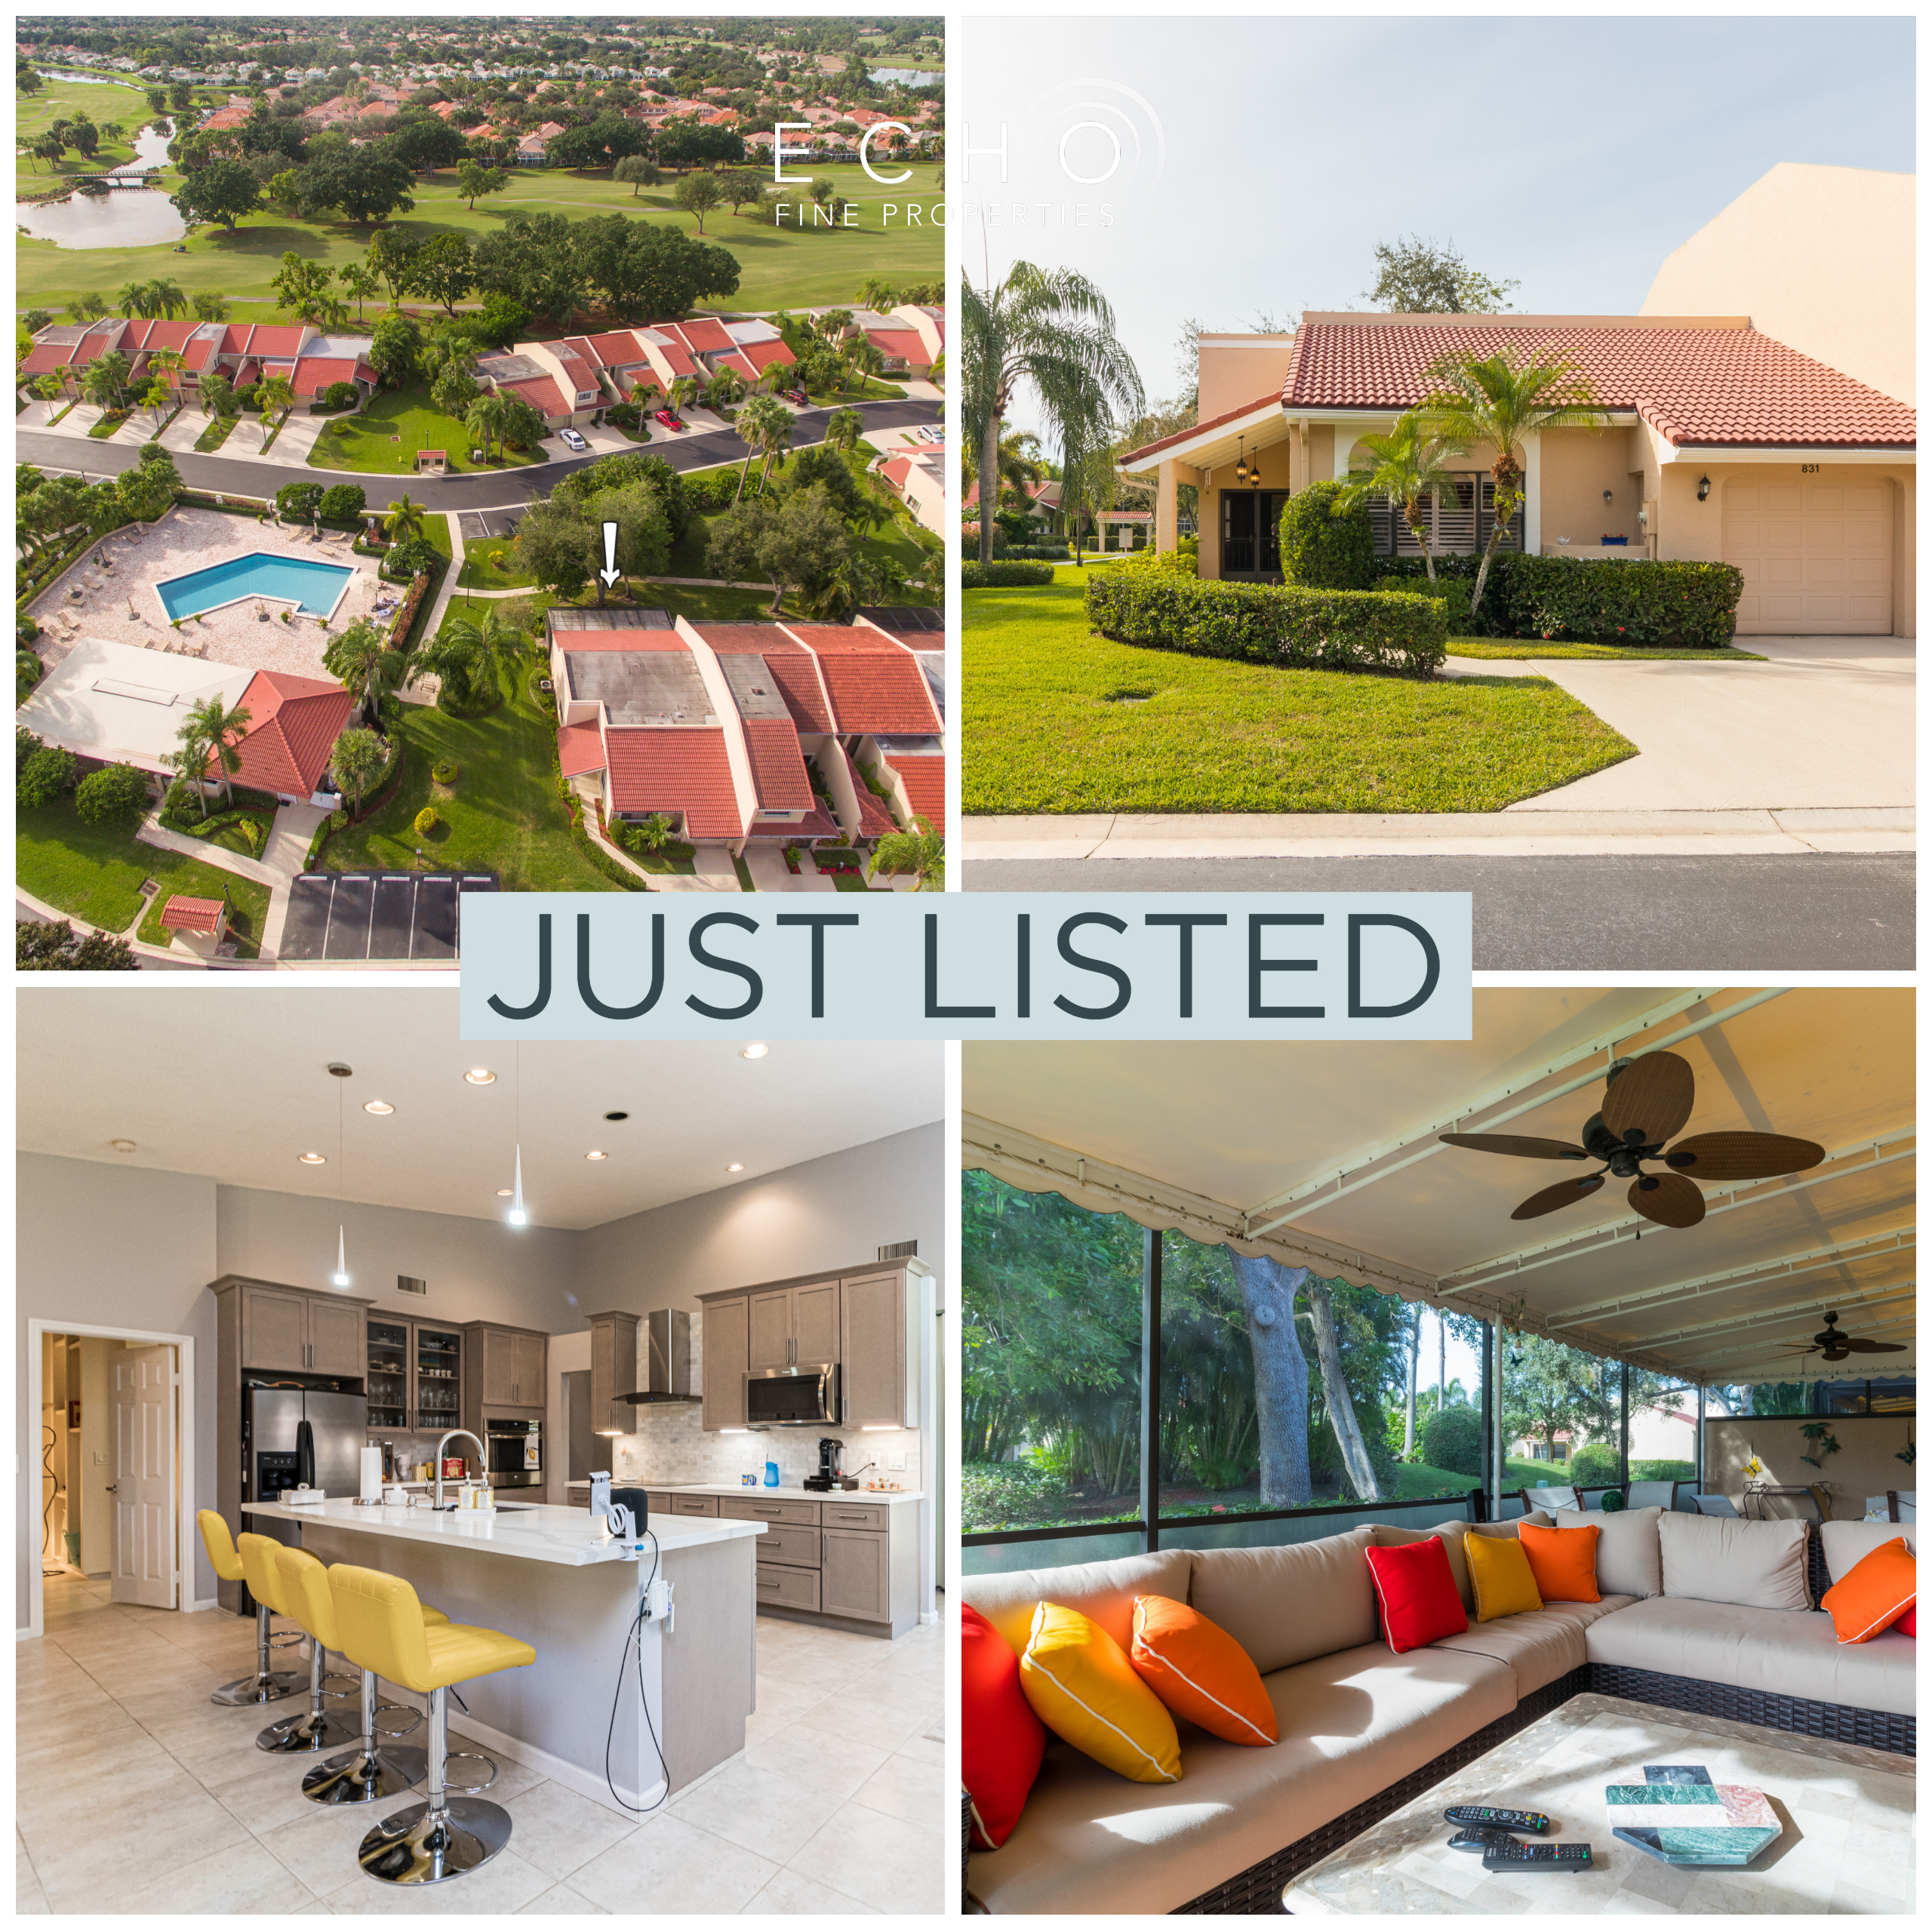 Just Listed 831 Windermere Way